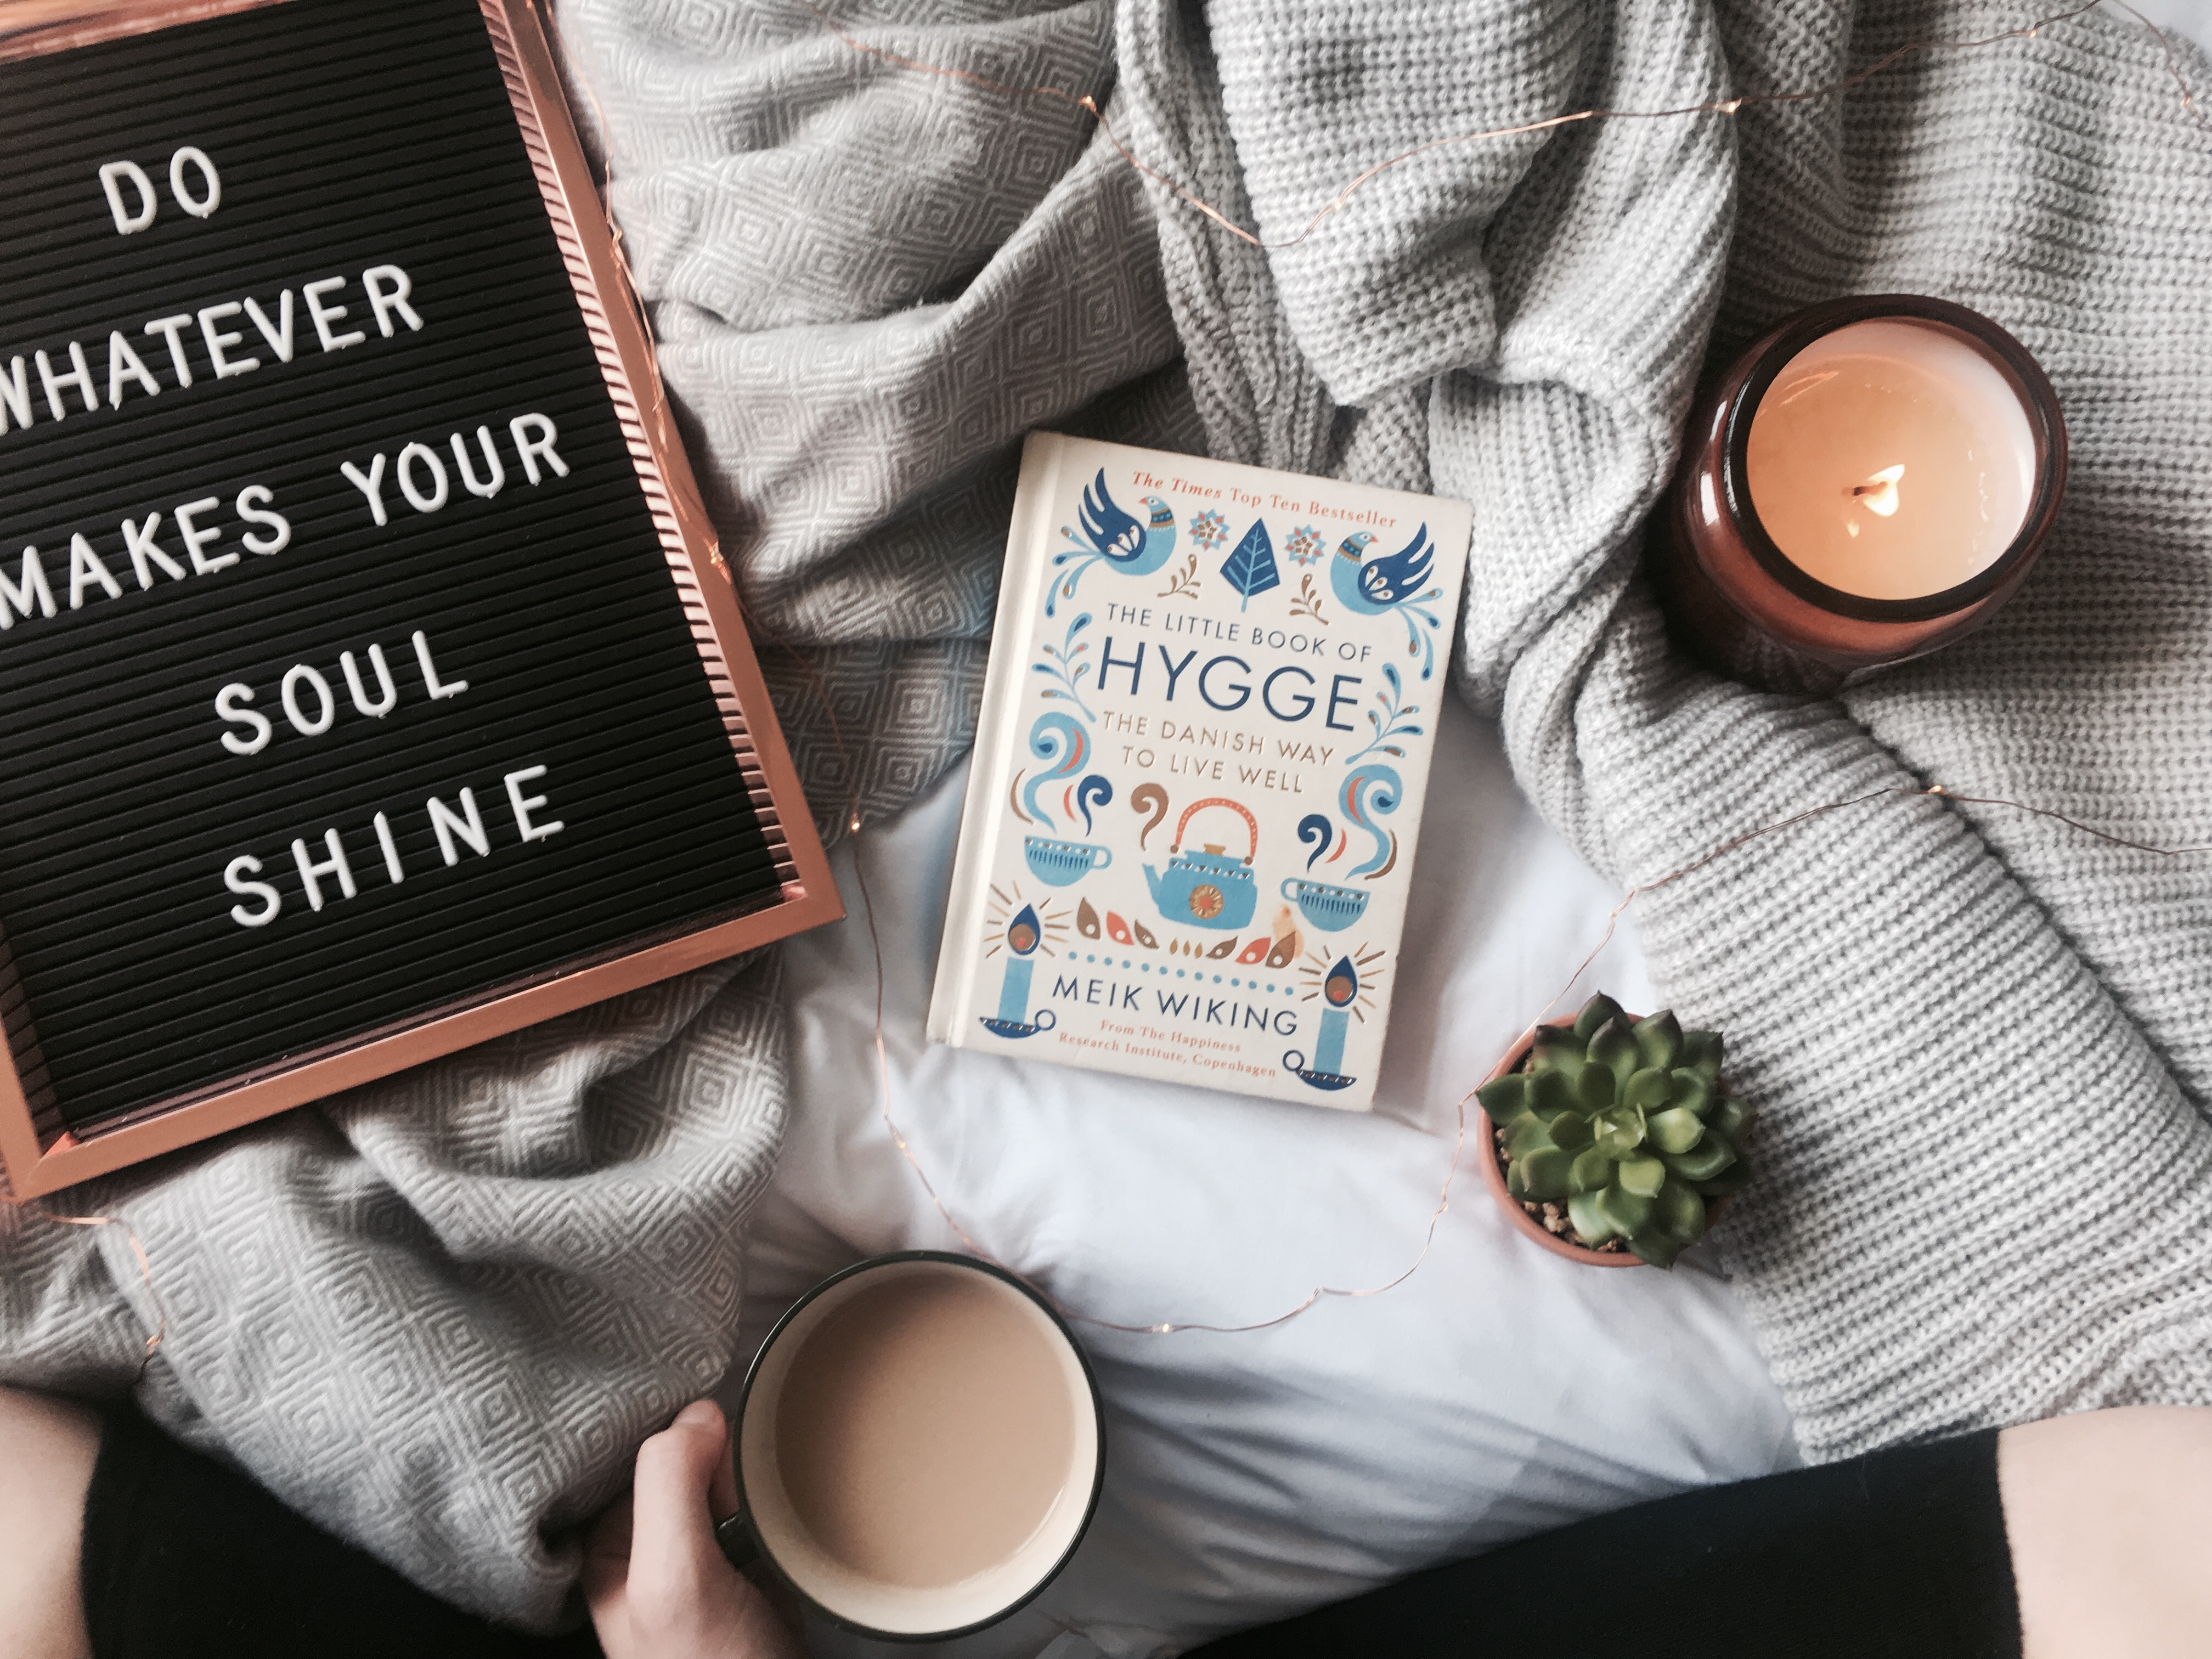 coffee and books in the middle of a bed